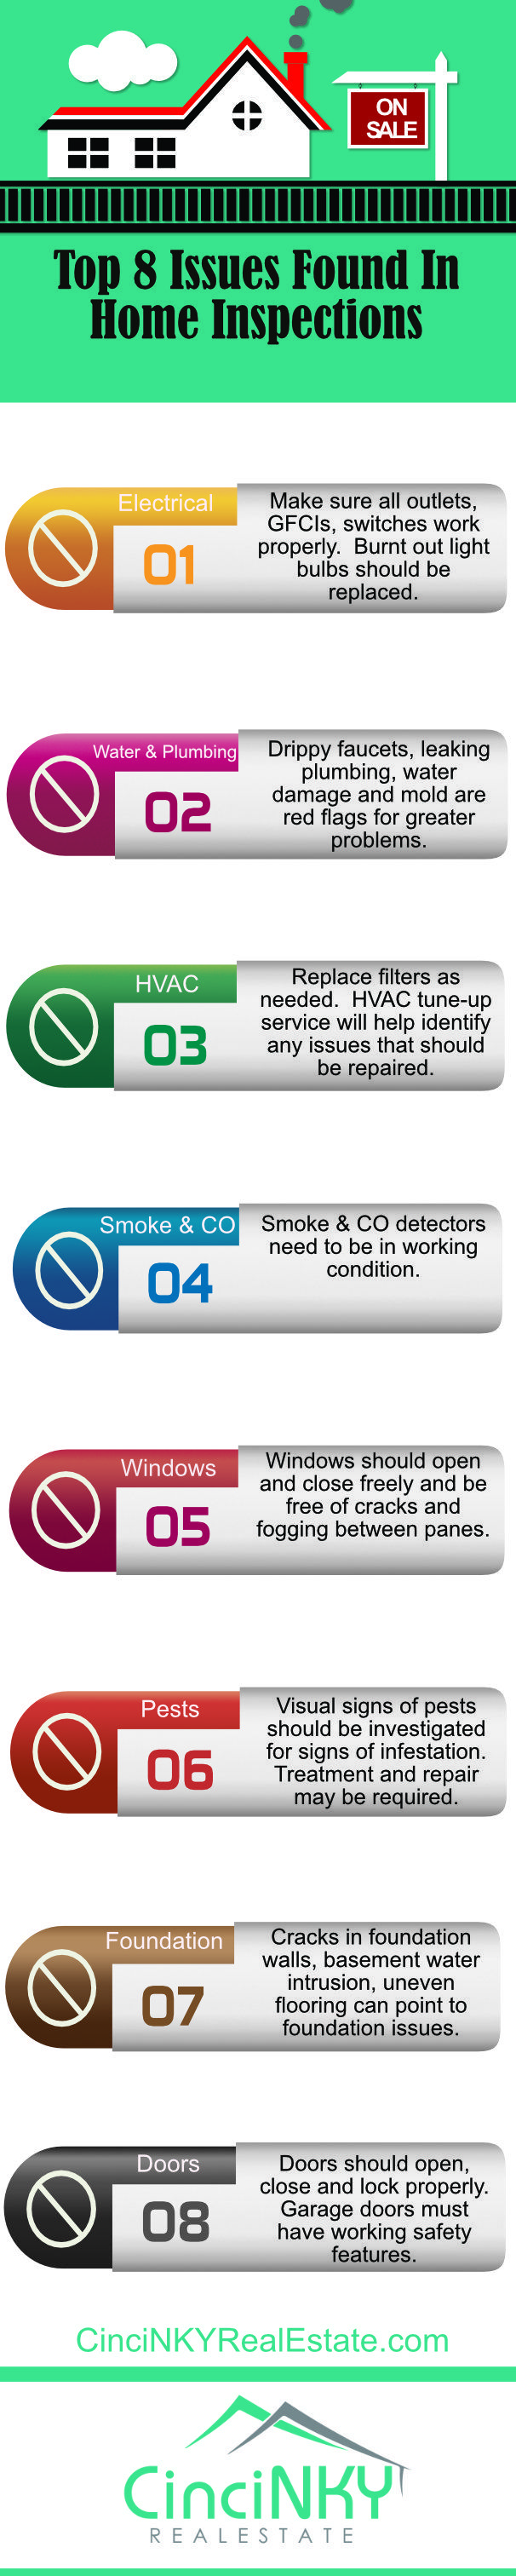 Top 8 Issues Found In Home Inspections: http://cincinkyrealestate.com/top-8-issues-found-home-inspections-infographic/